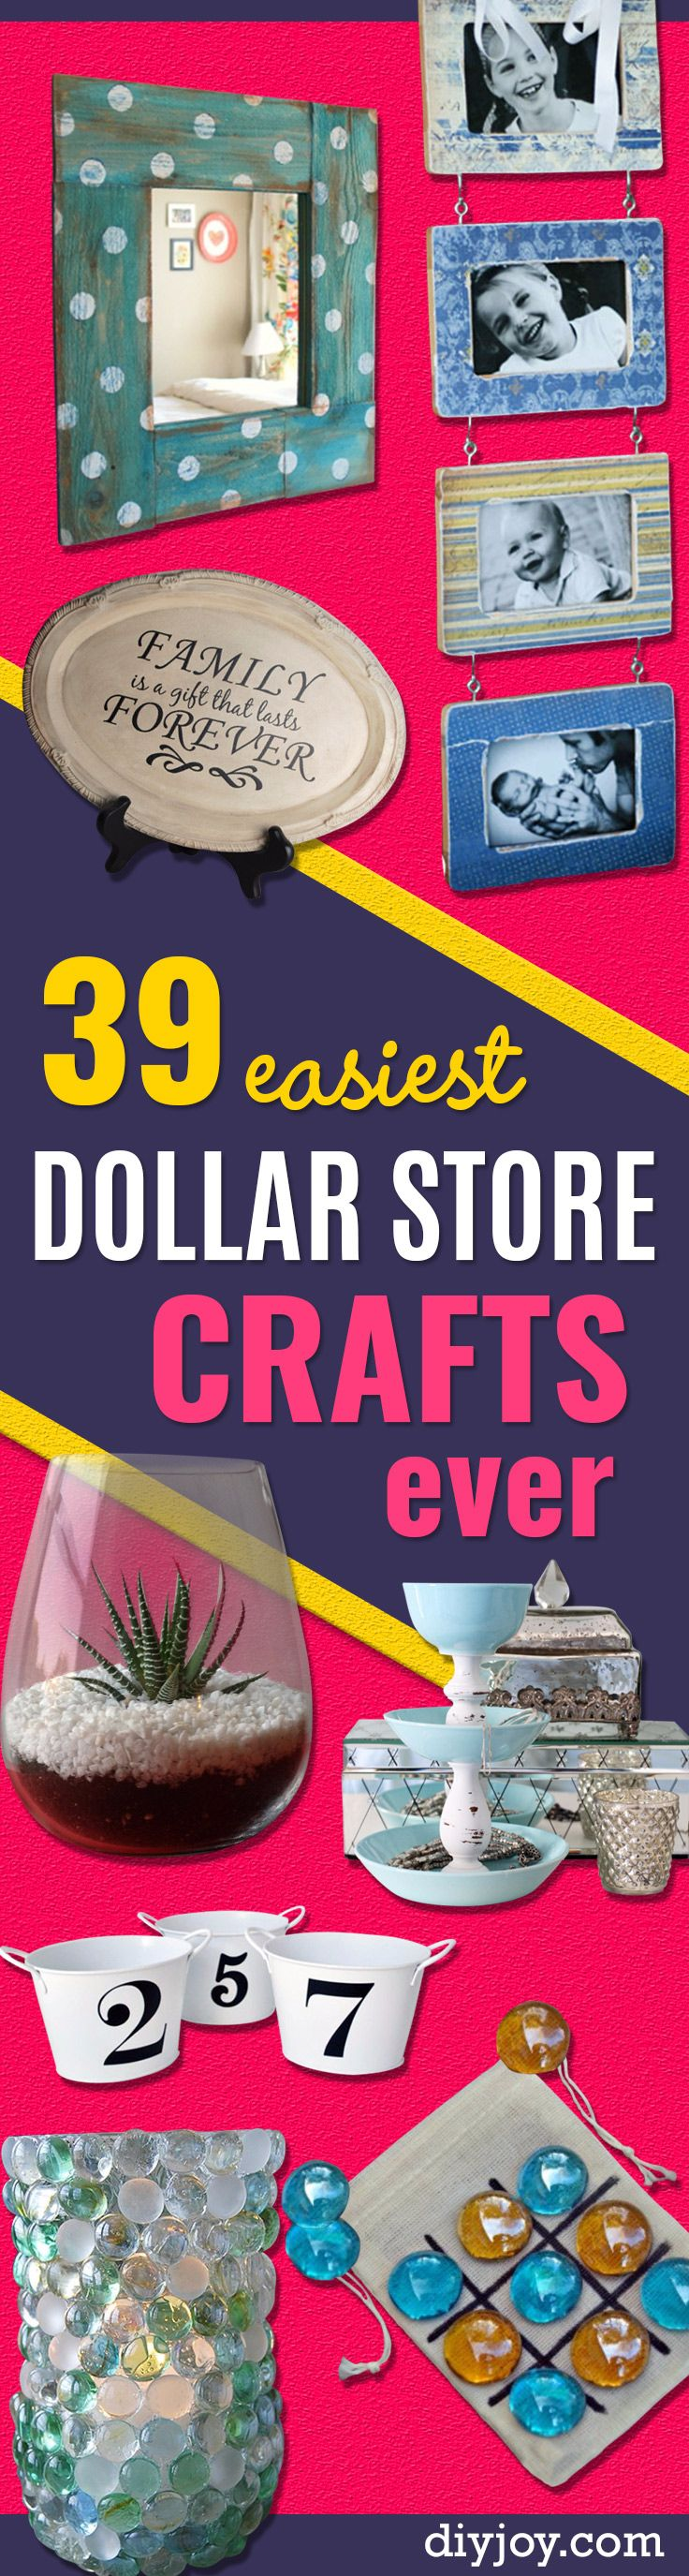 39 easiest dollar store crafts ever las fiestas decoraciones del 39 easiest dollar store crafts ever quick and cheap crafts to make dollar store craft ideas to make and sell cute dollar store do it yourself projects solutioingenieria Gallery